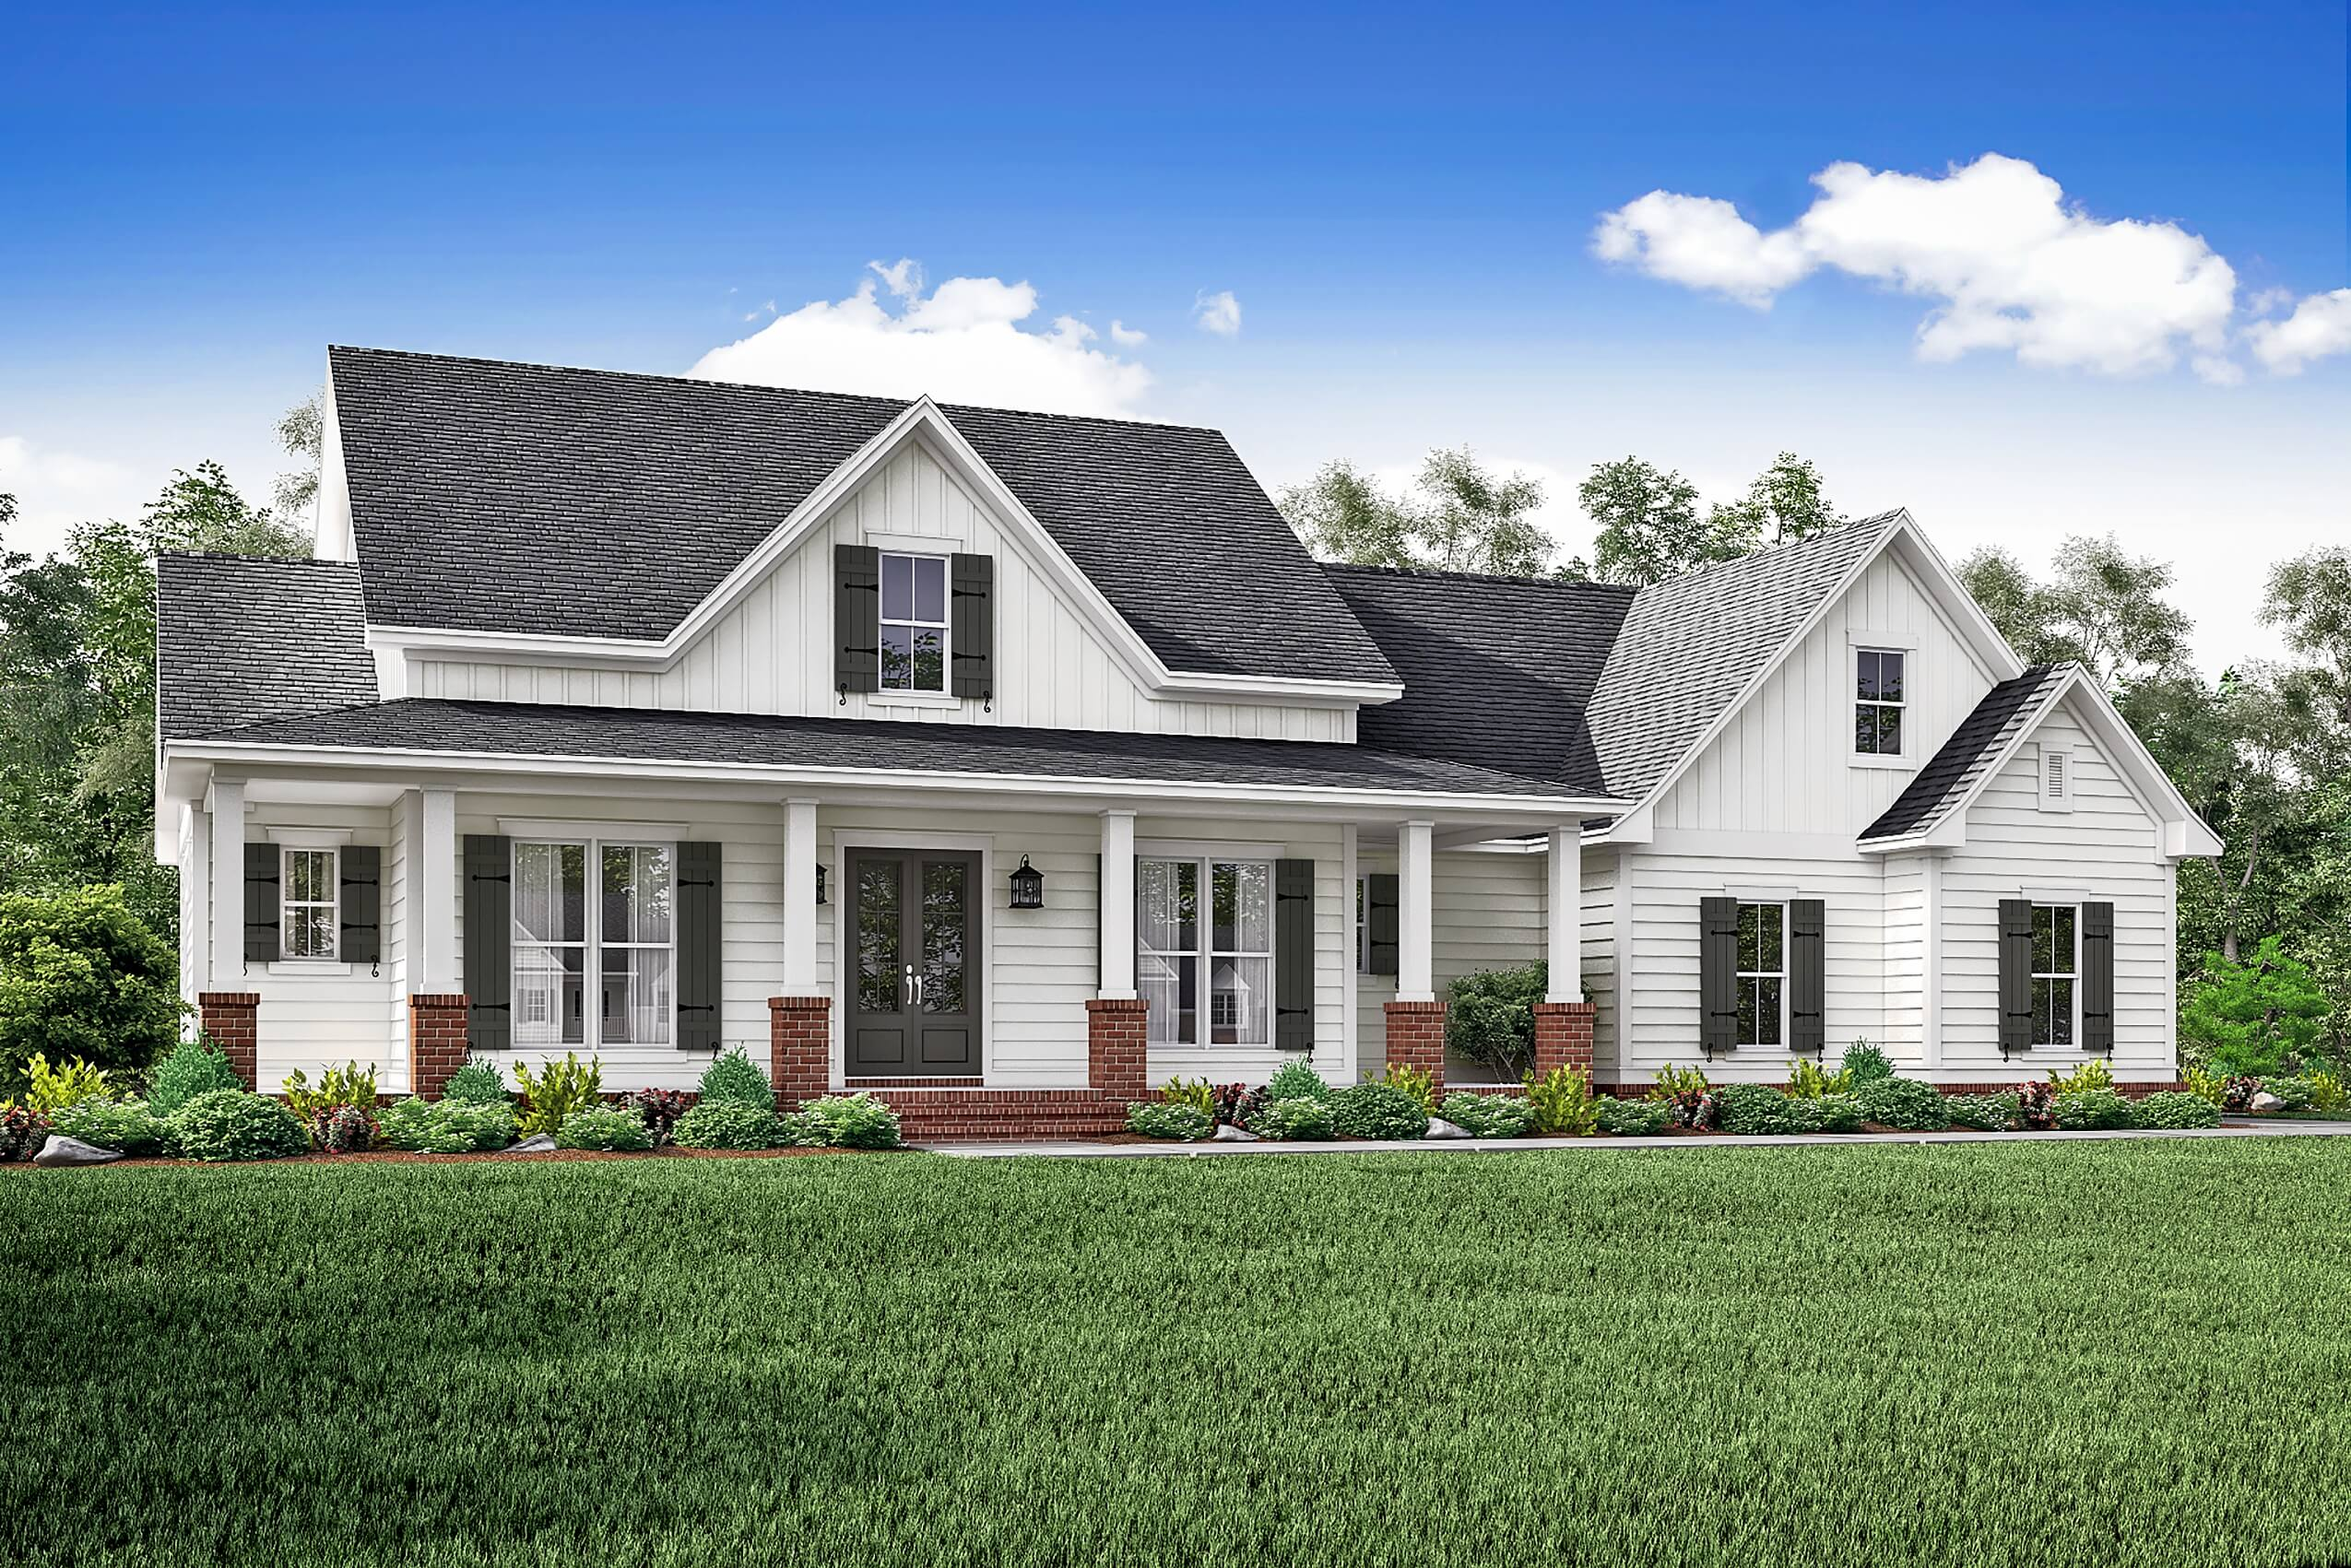 142 1166 front elevation of country home plan theplancollection house plan 142 1166